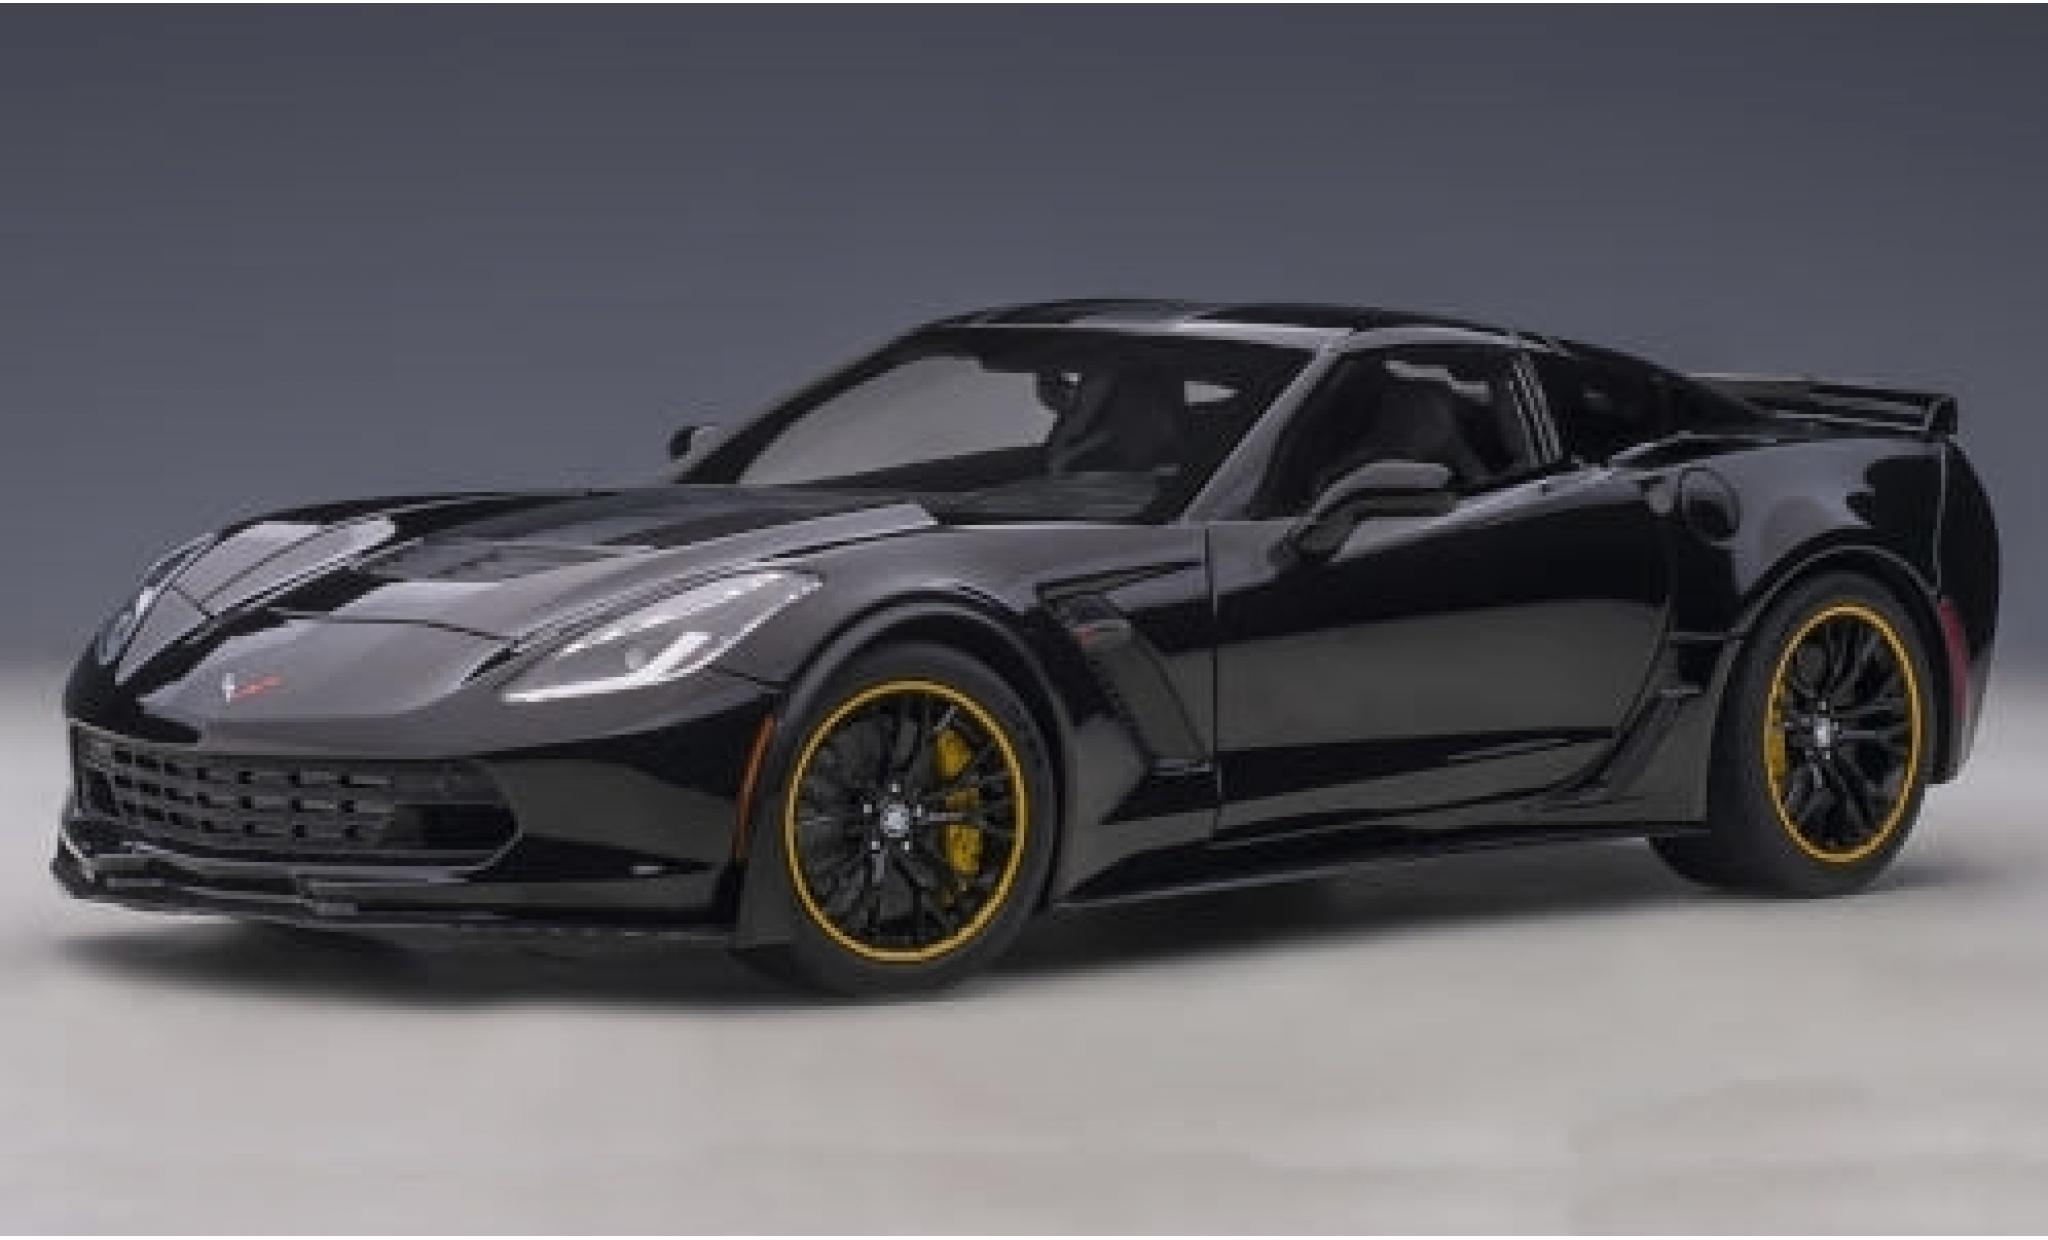 Chevrolet Corvette 1/18 AUTOart (C7) Z06 C7R Edition black/matt-black 2015